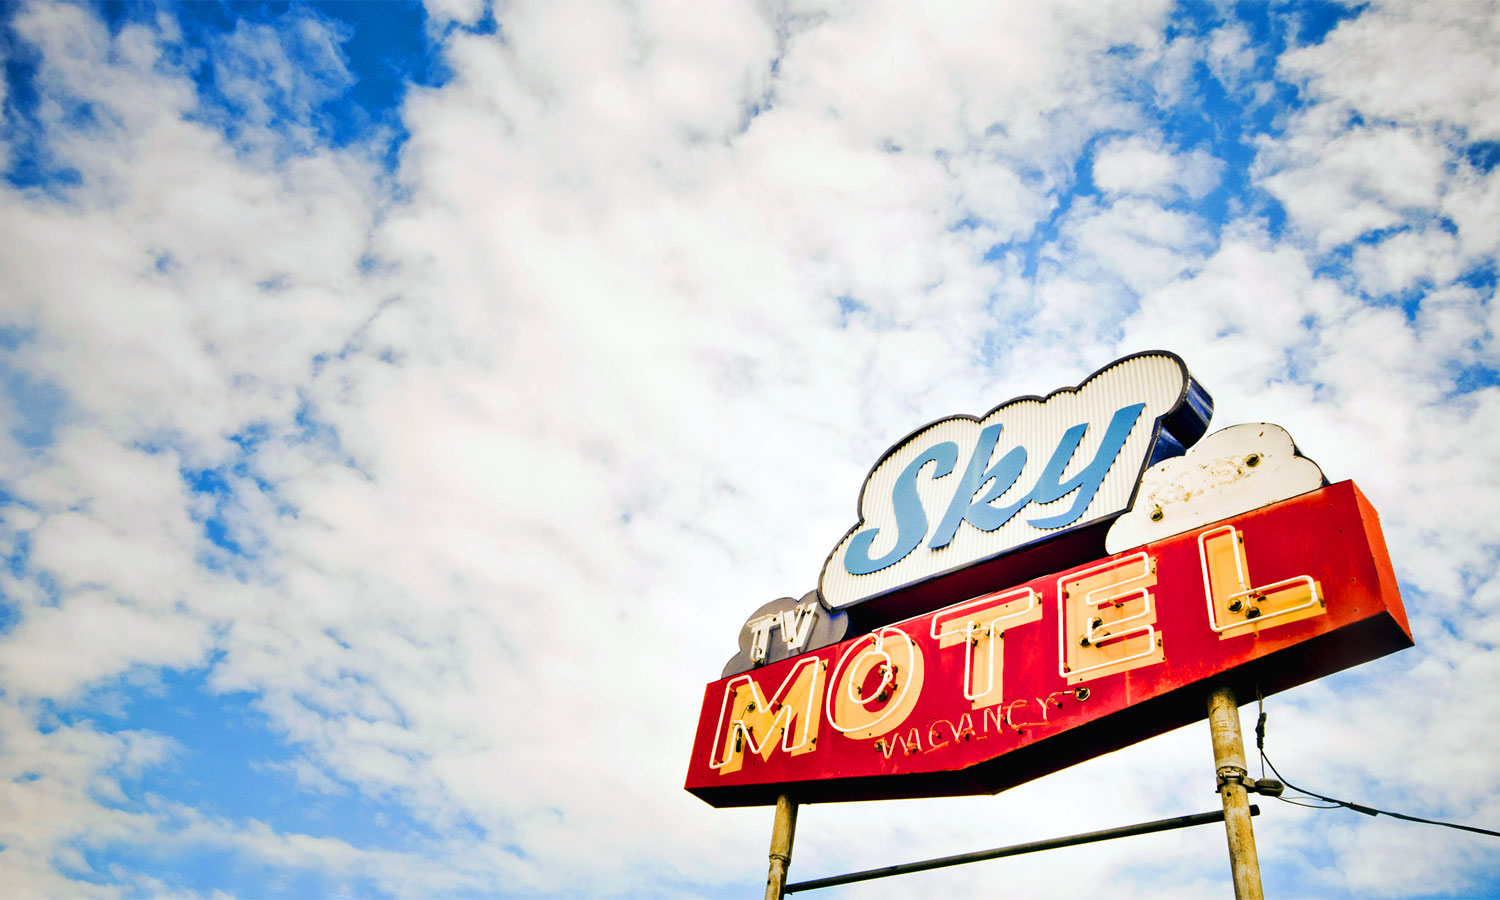 Motel e hotel: differenze